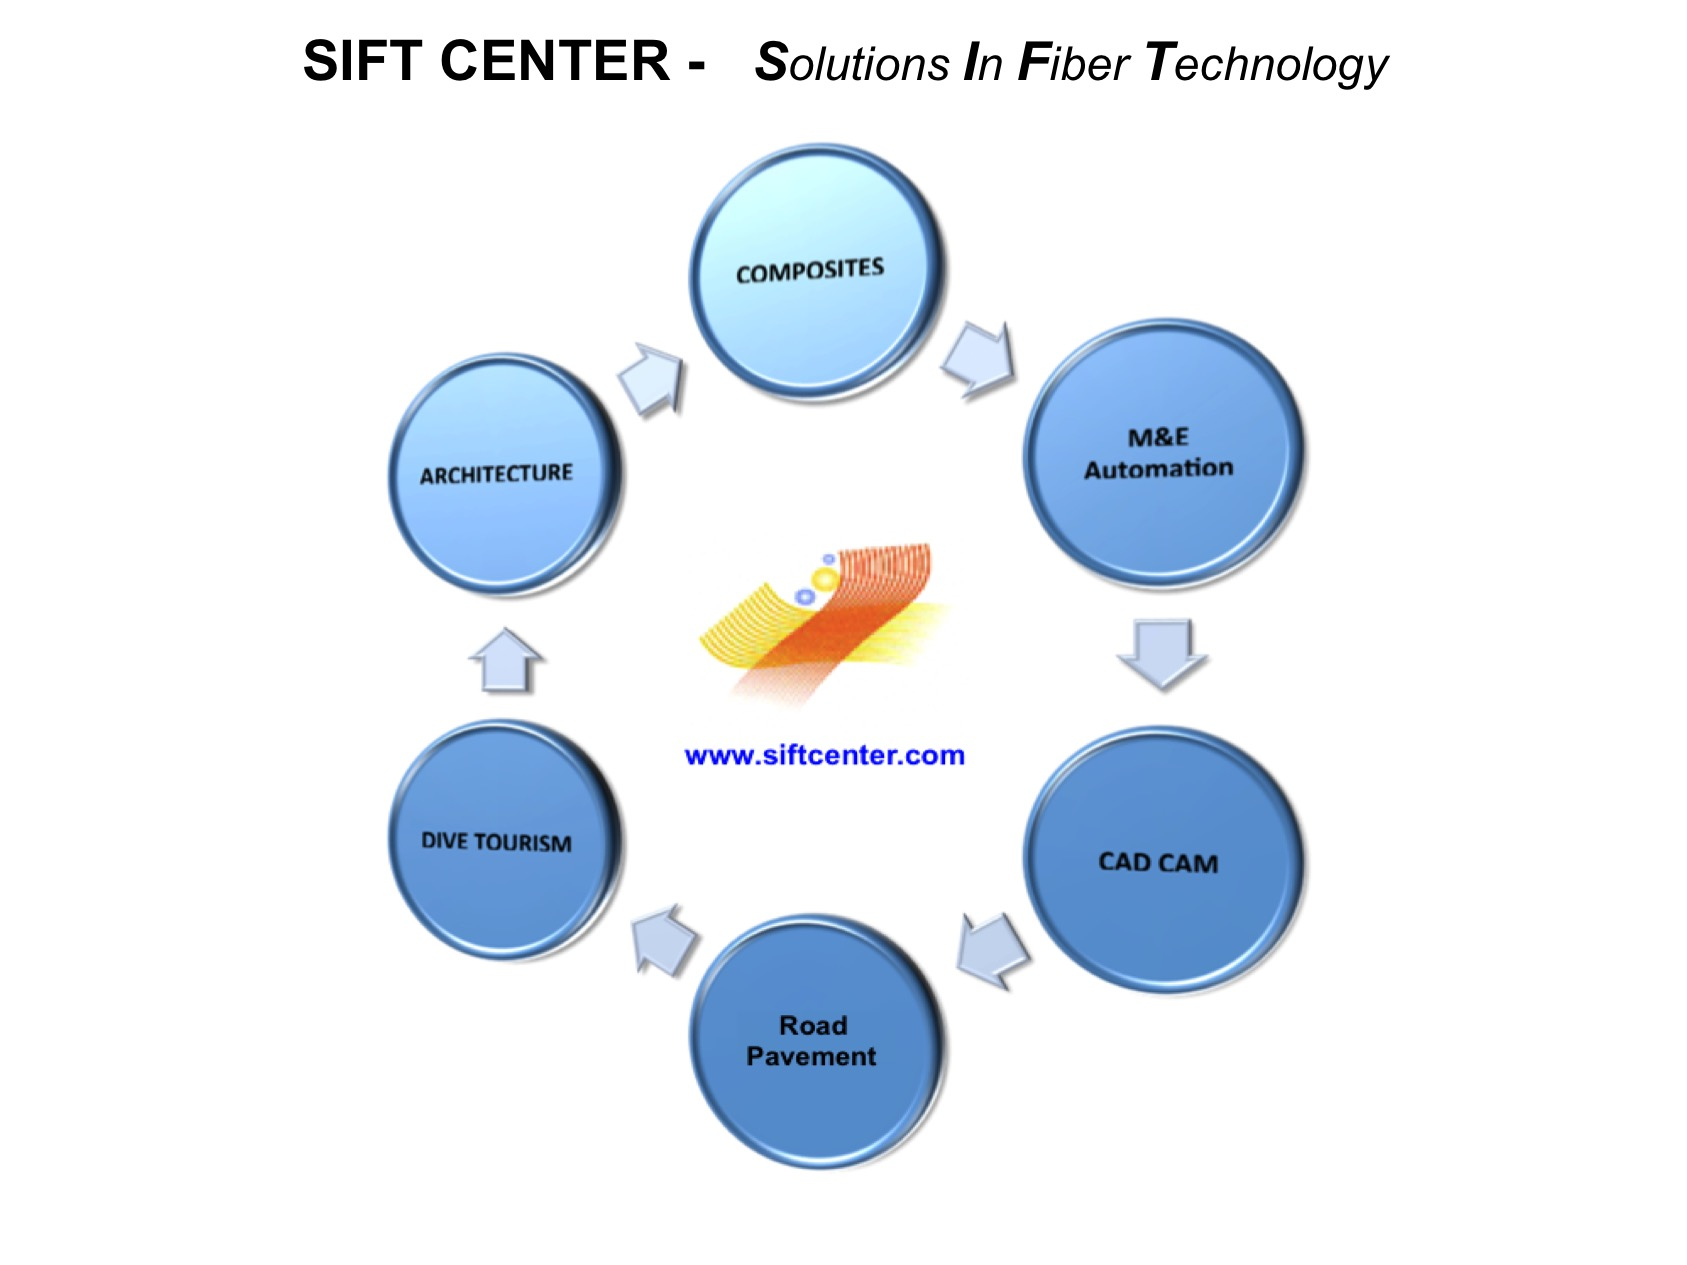 Sift Center : Company Overview